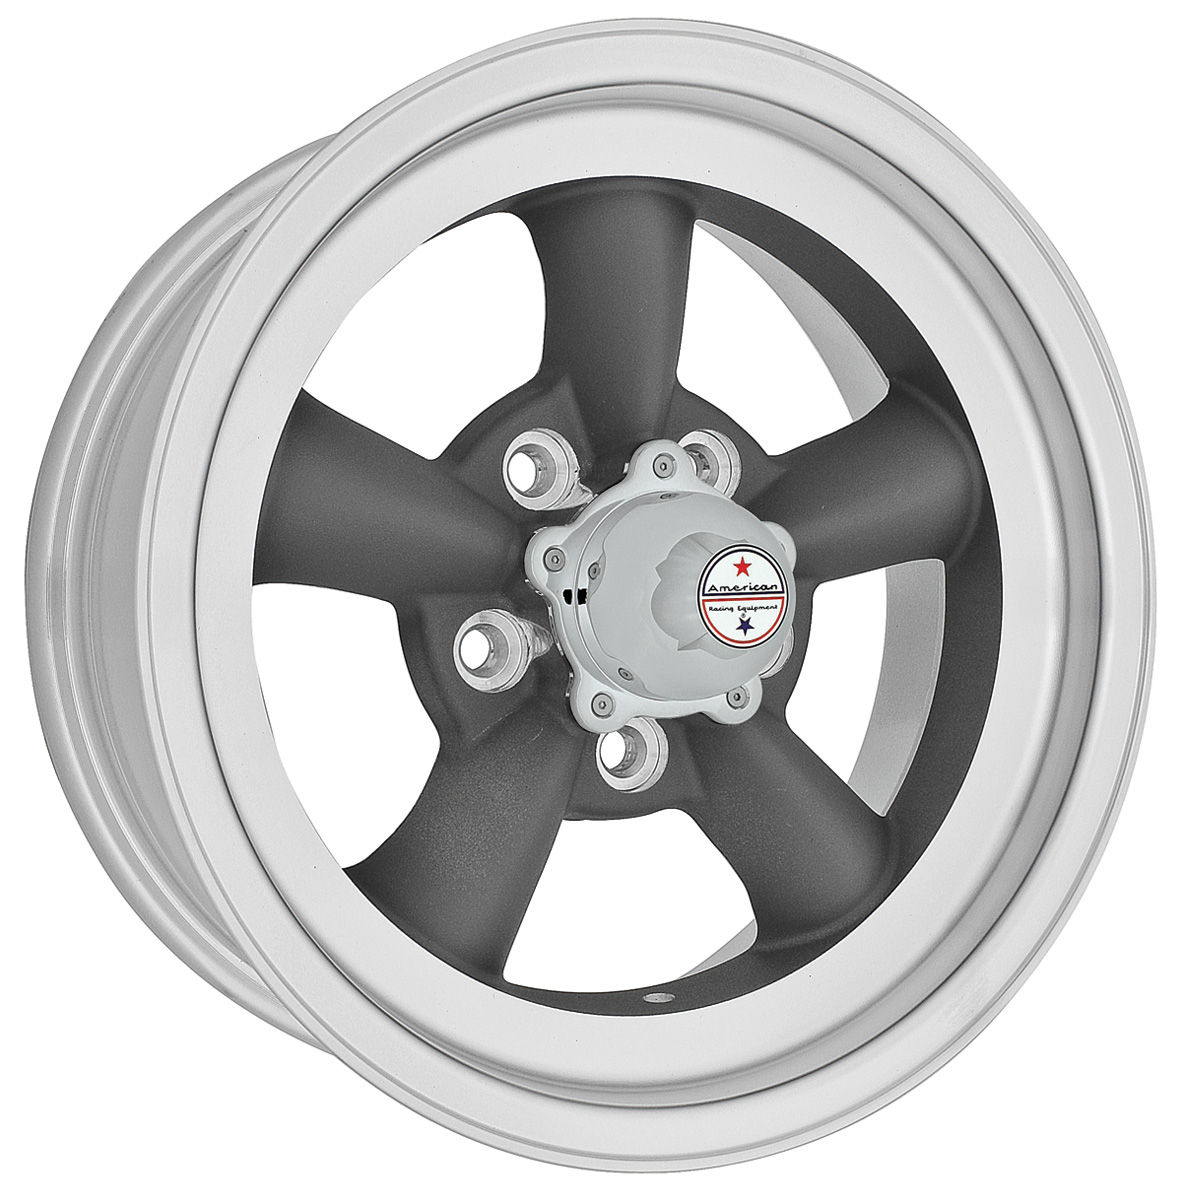 "Photo of Malibu Wheel, Torq-Thrust D Racing 15"" x 8-1/2"" (B.S. 3-3/4"") -24 mm offset"